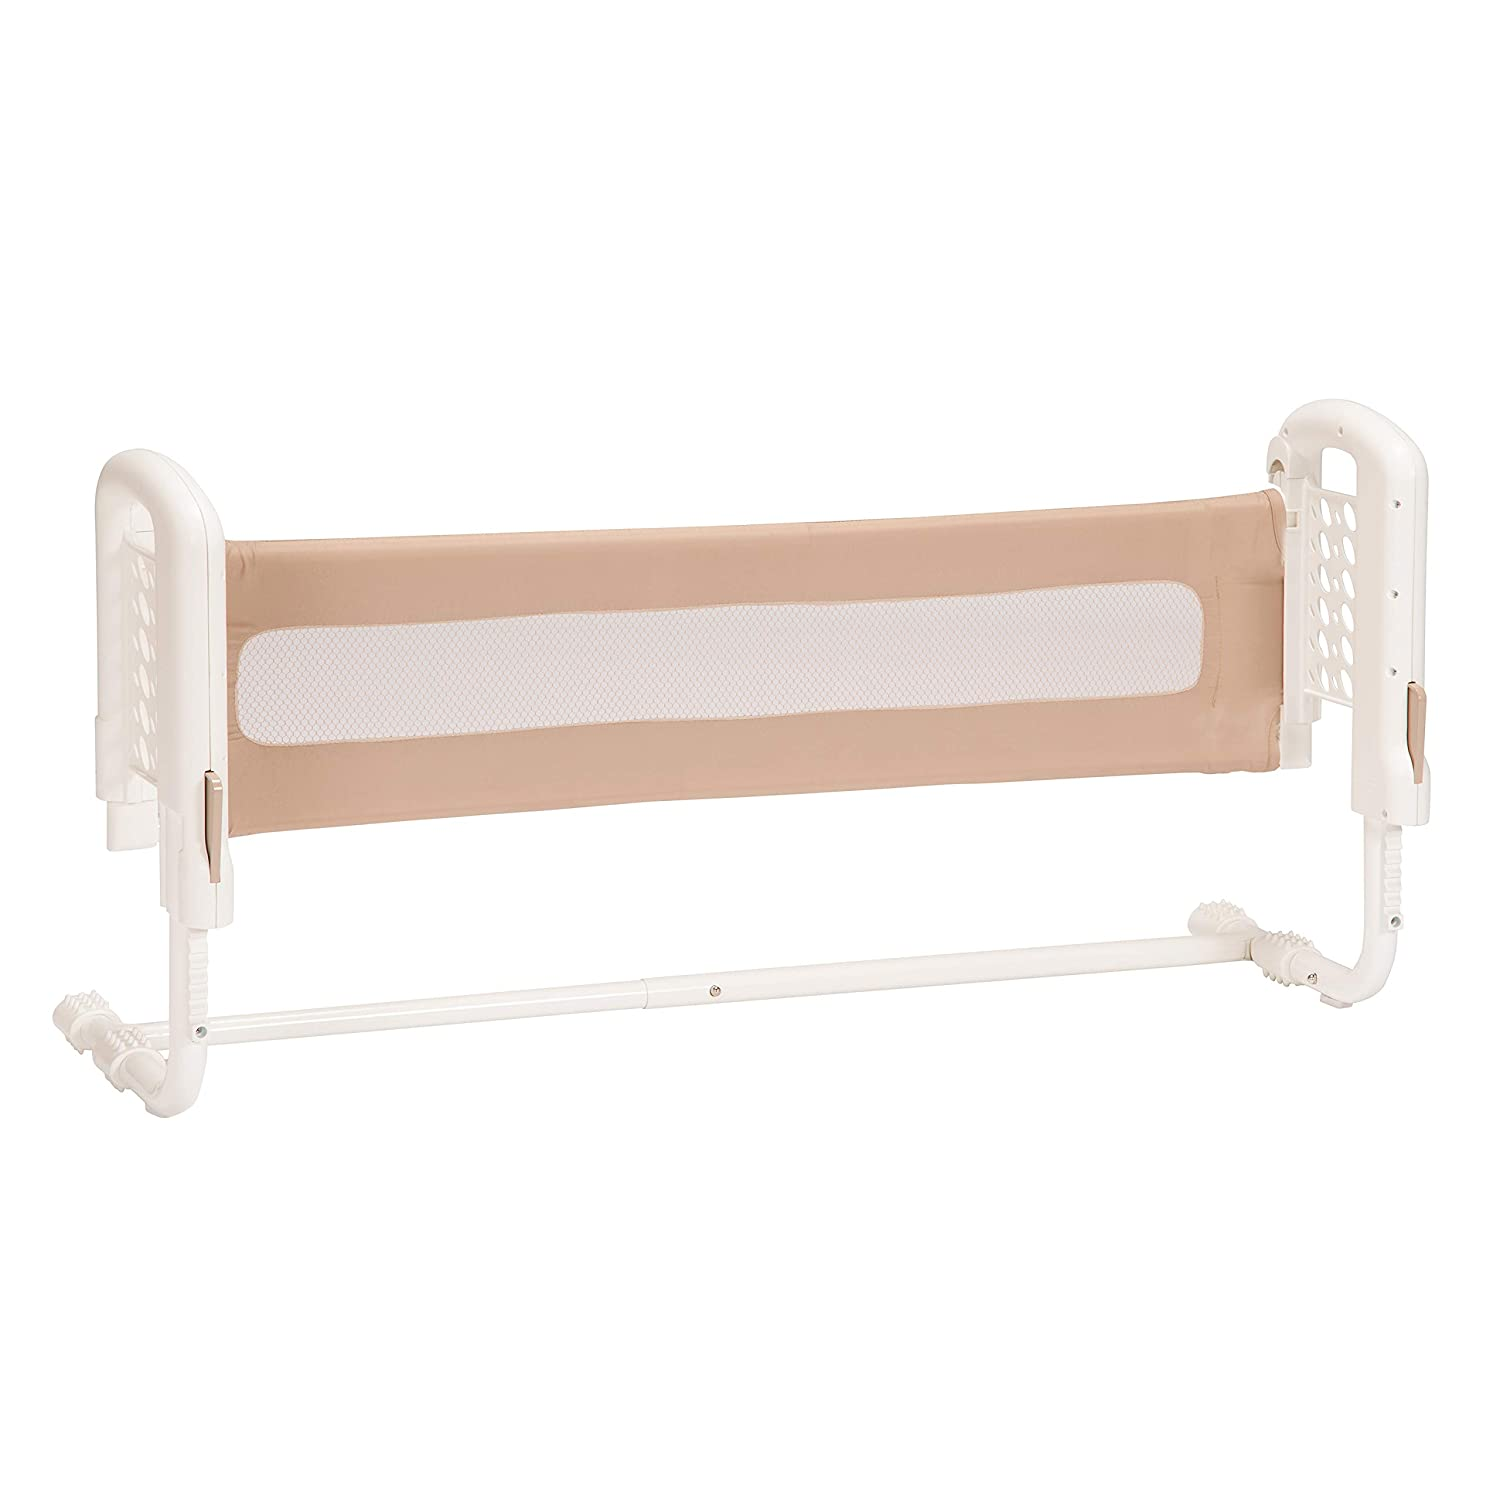 Safety 1st Top-of-mattress Bed Rail, Cream BR017CRE2A